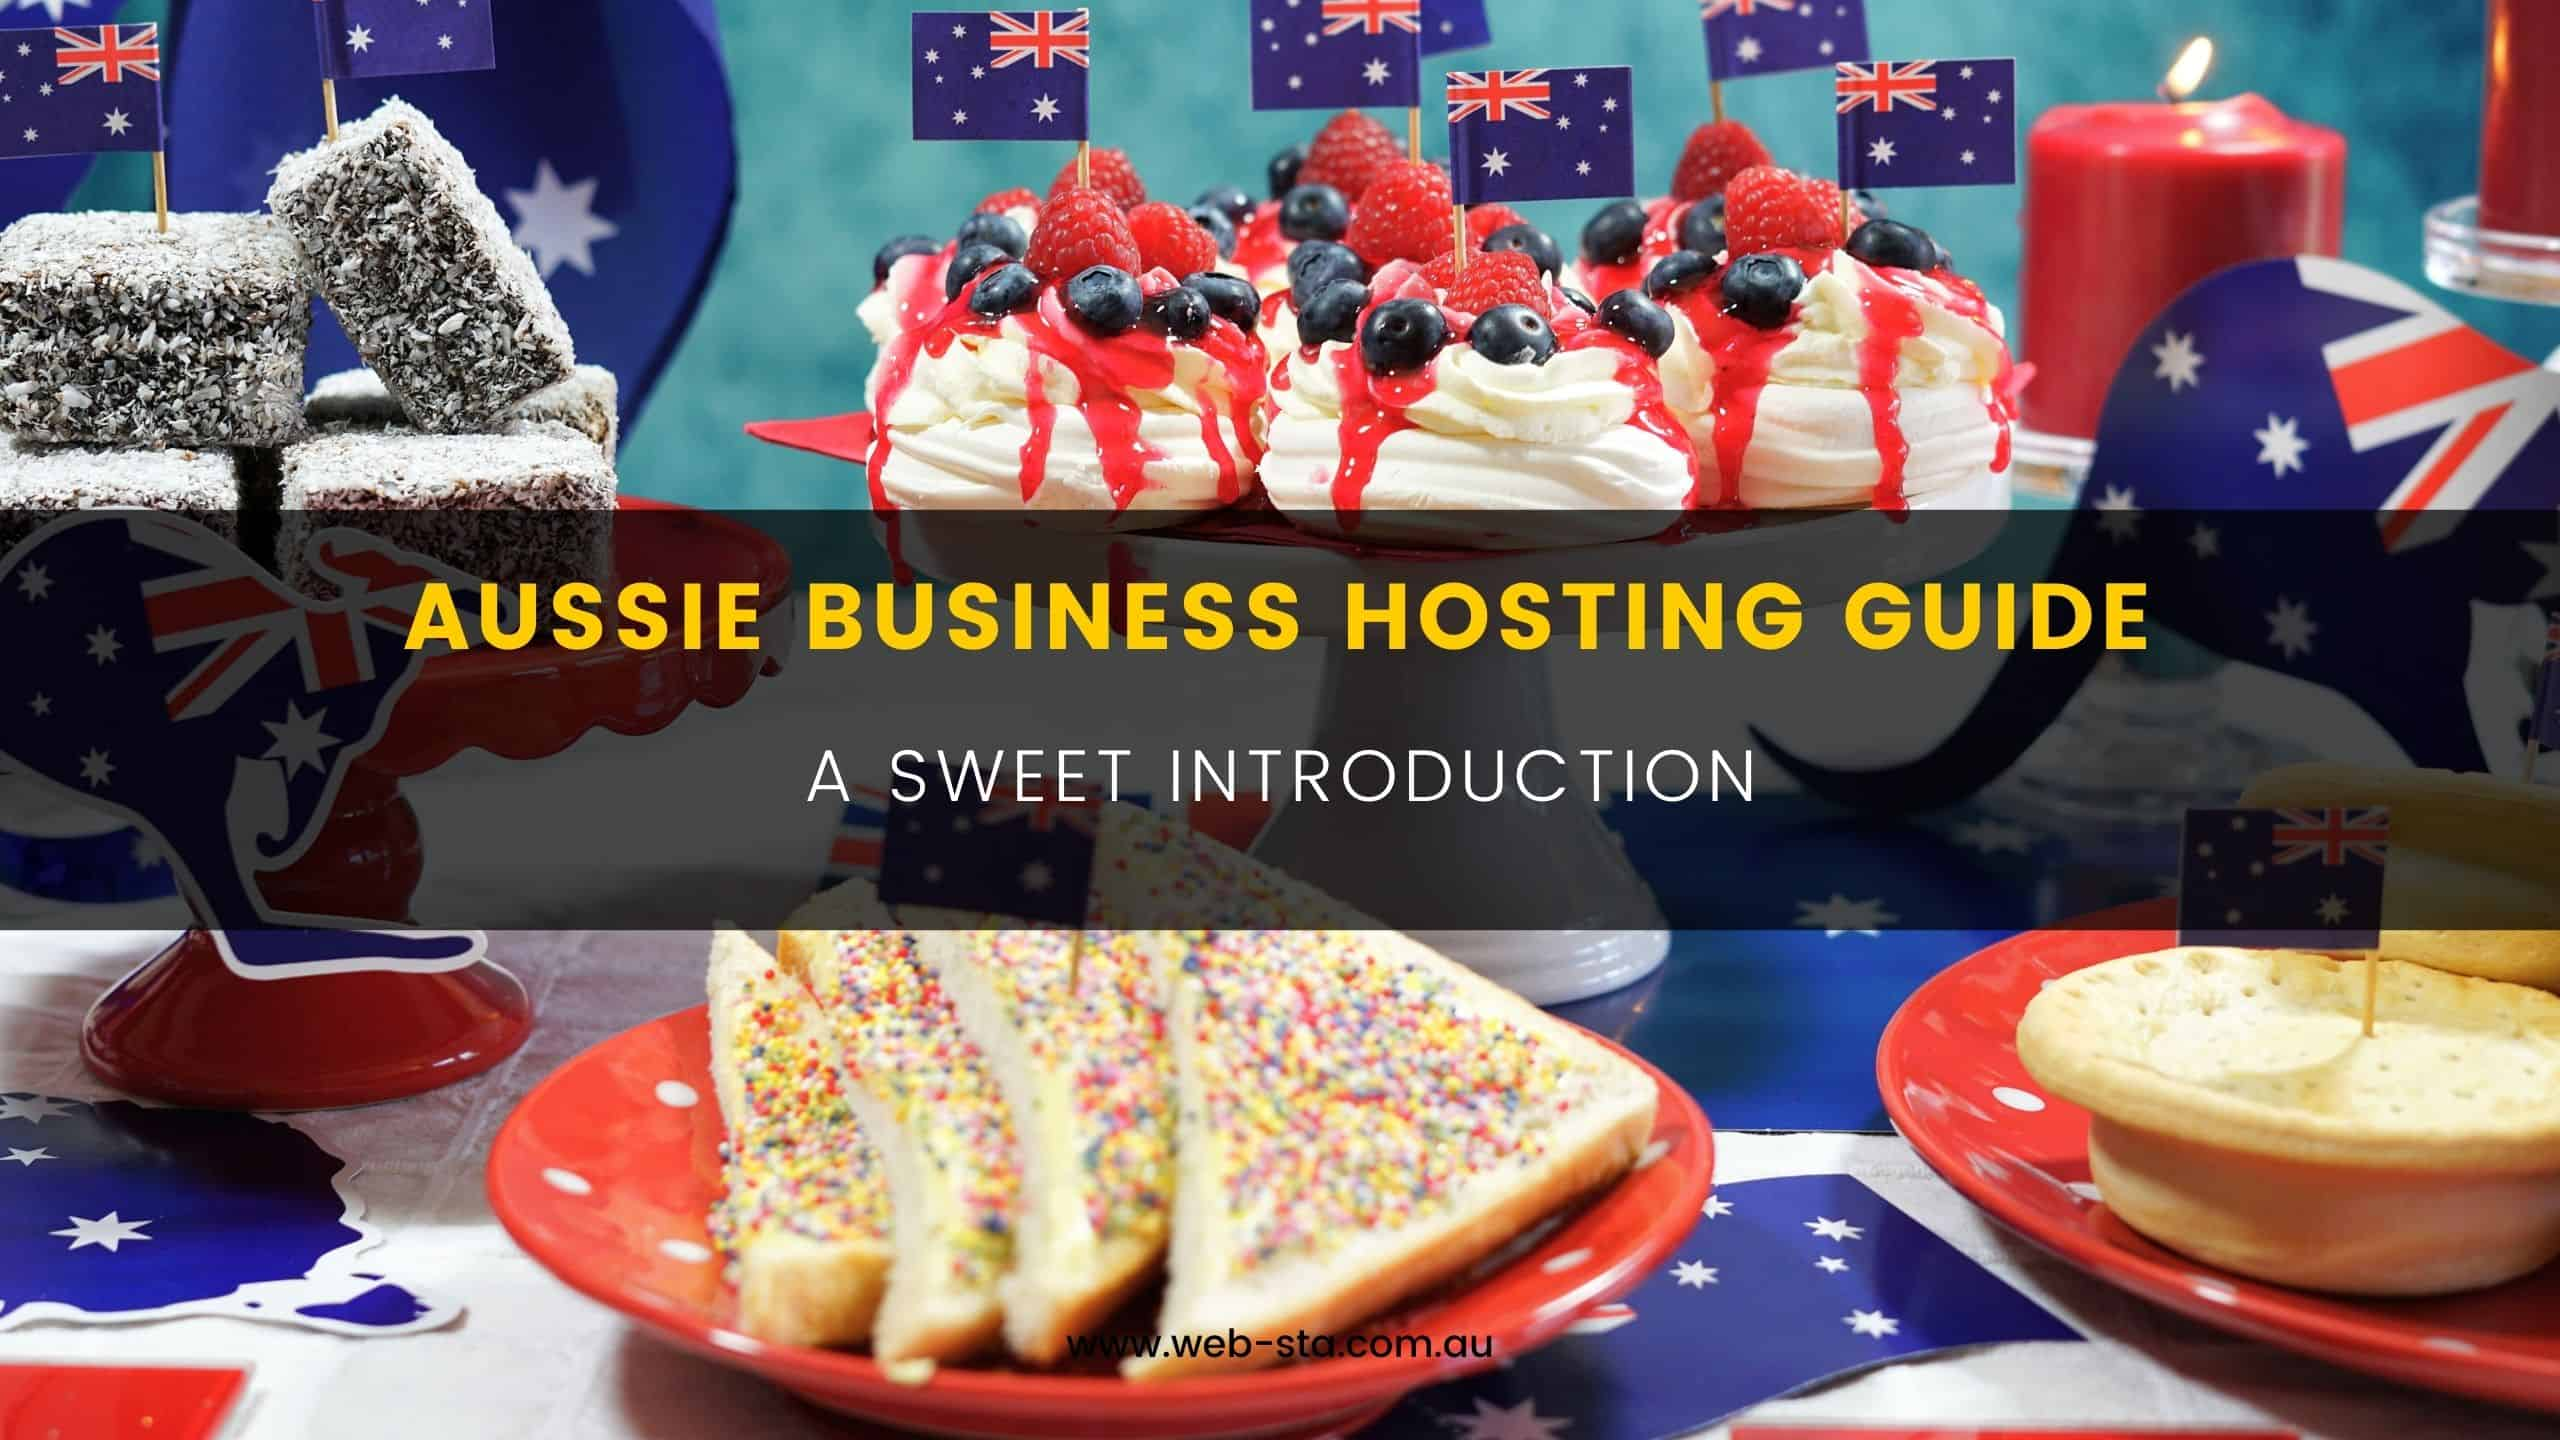 Aussie Business Hosting Guide - An Sweet Introduction